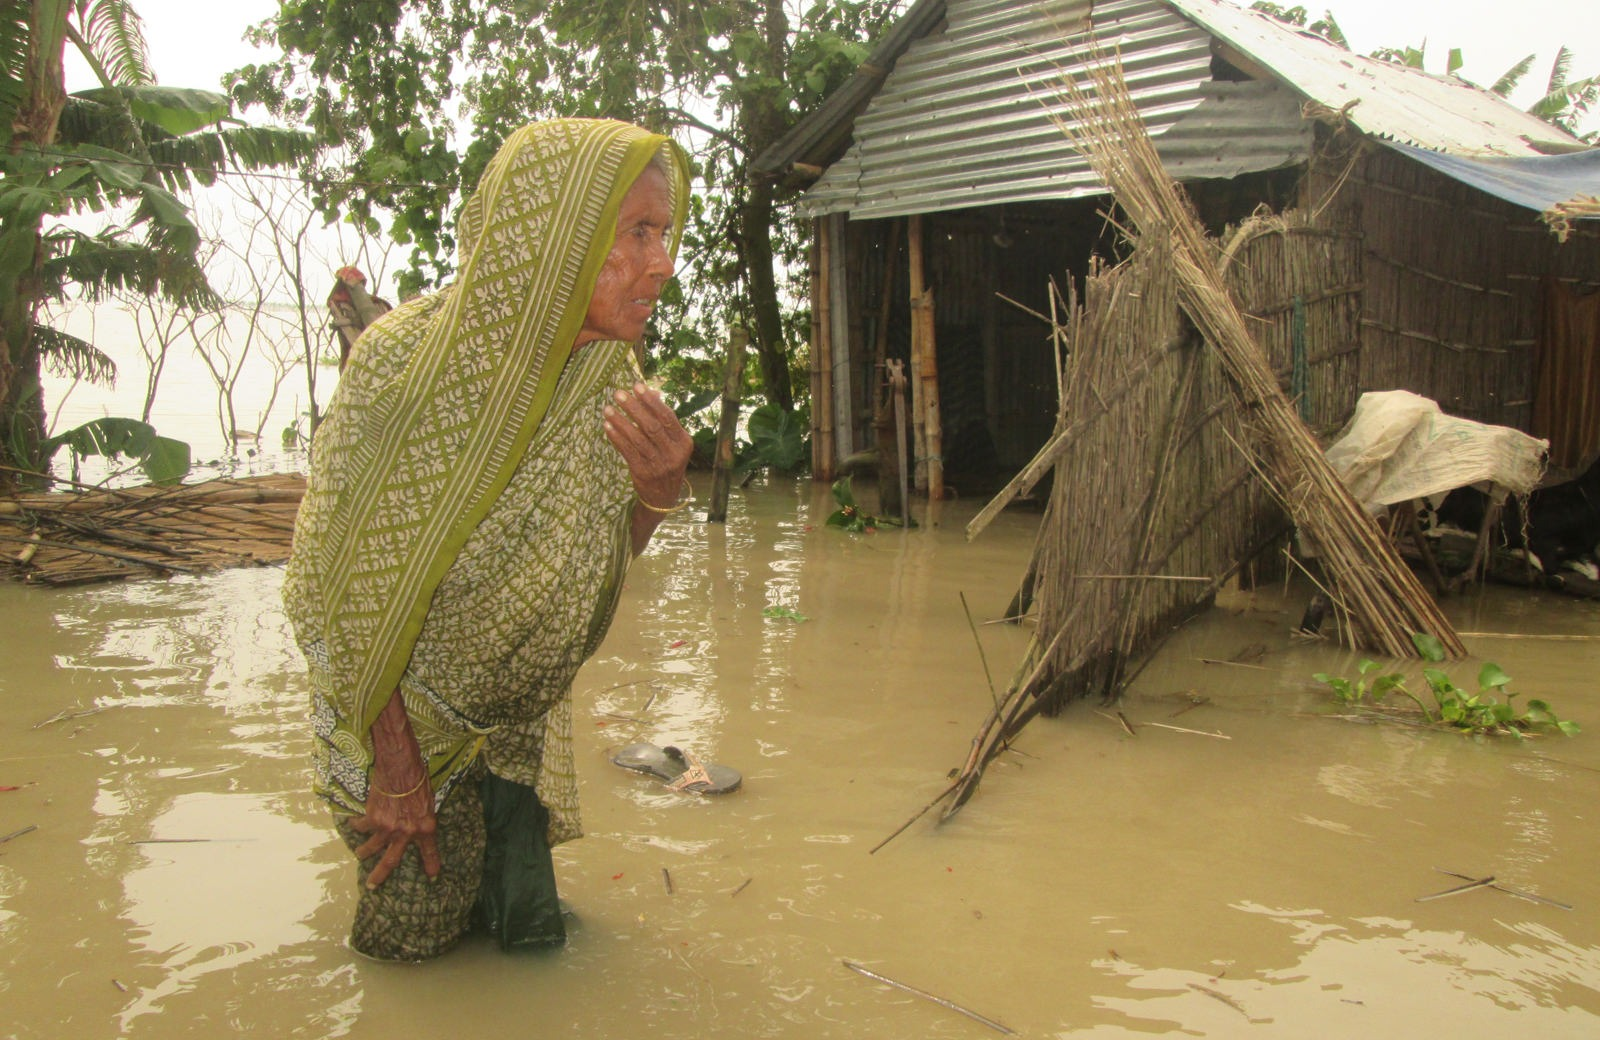 An elderly woman amidst flooding which hit the region in 2017